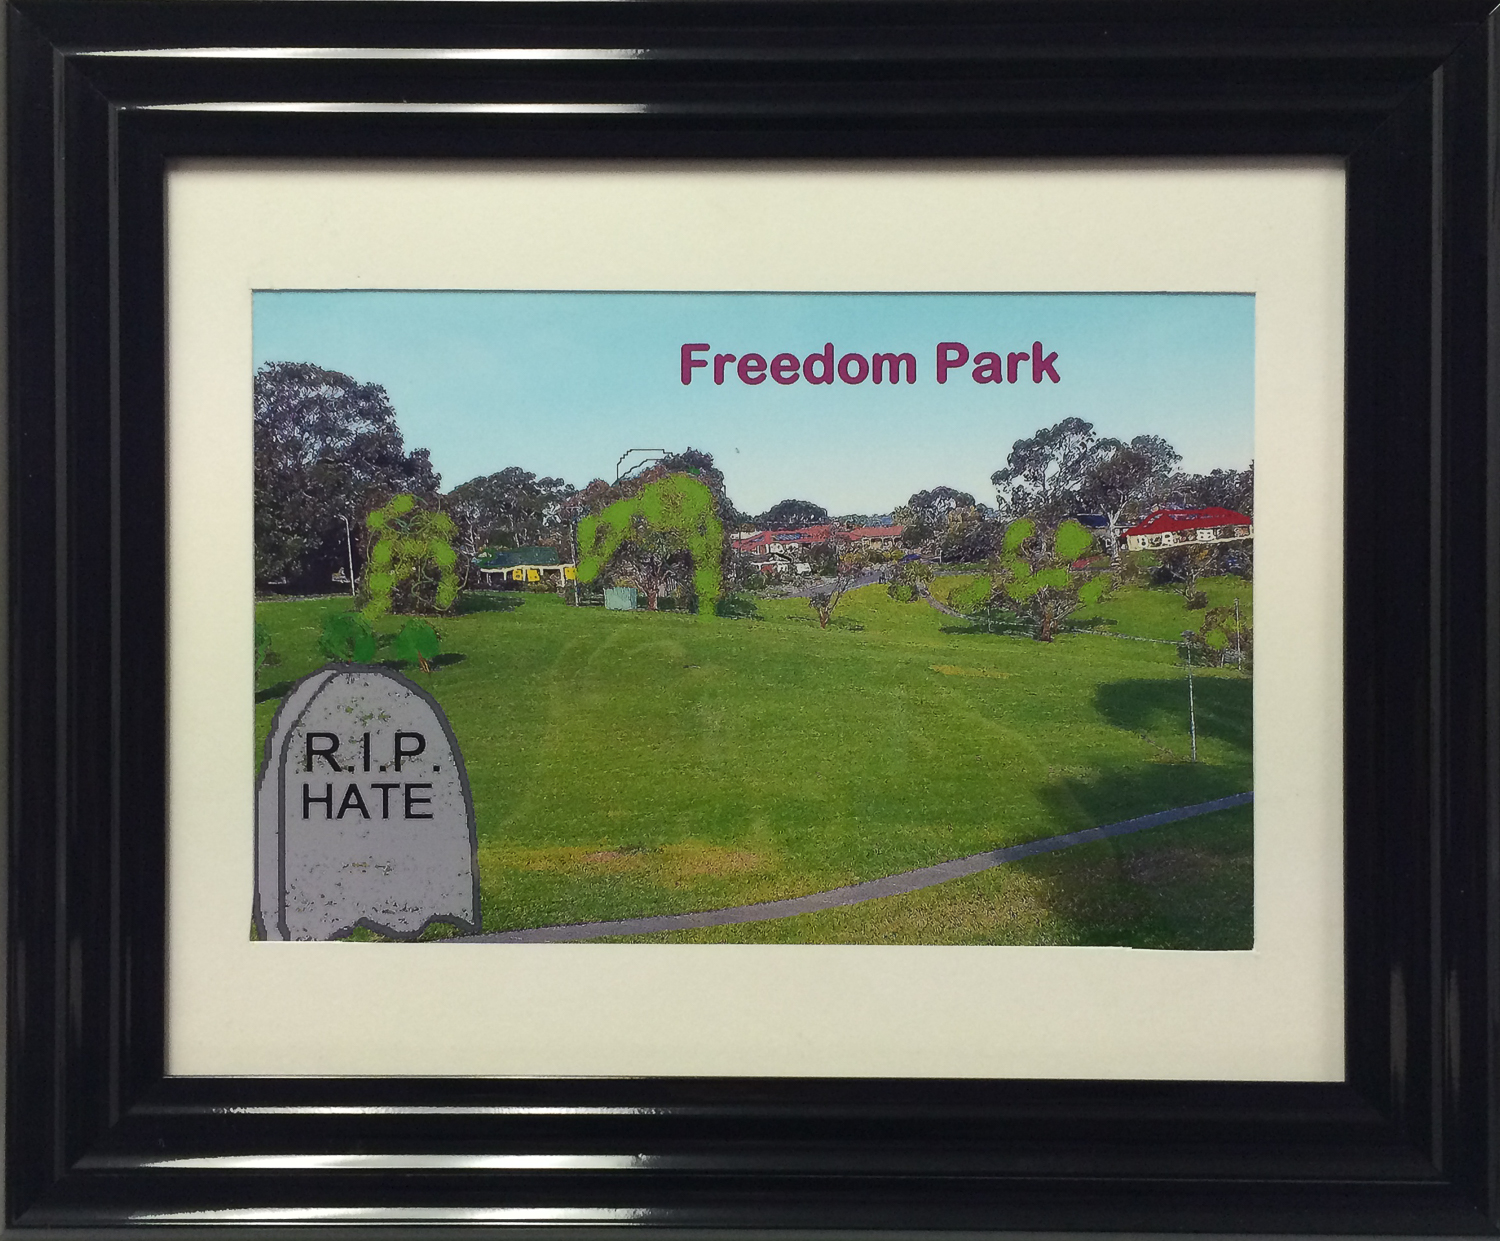 Painting of park with a tombstone that says RIP hate